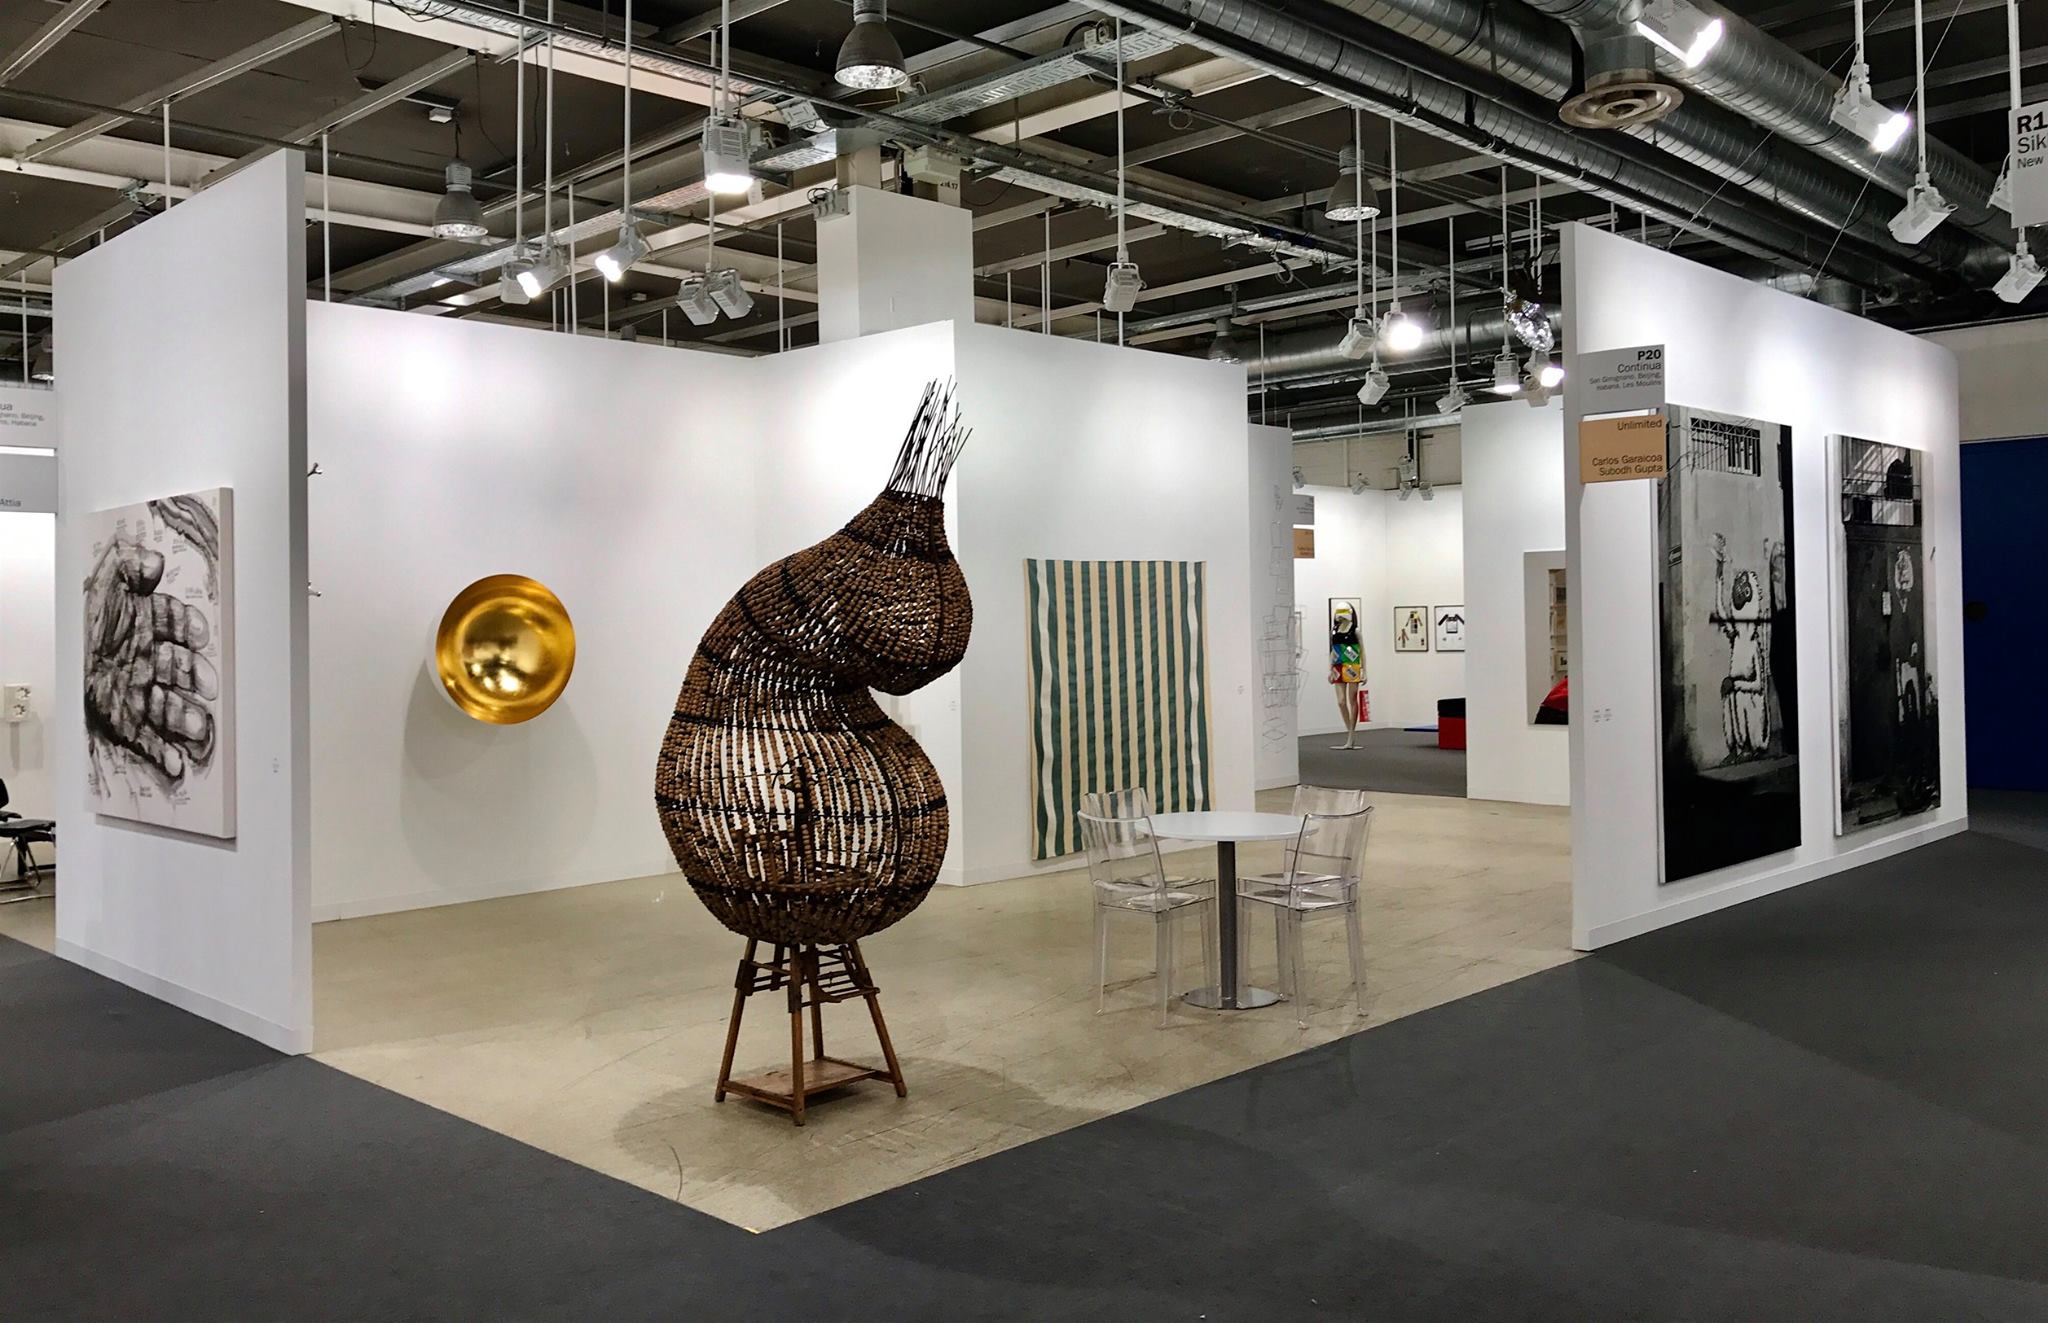 Galleria Continua ad Art Basel 2017, Unlimited and Film Program. Featured: works of Qiu Zhijie, Anish Kapoor, Chen Zhen, Daniel Buren, Antony Gormley, Carlos Garaicoa ecc...